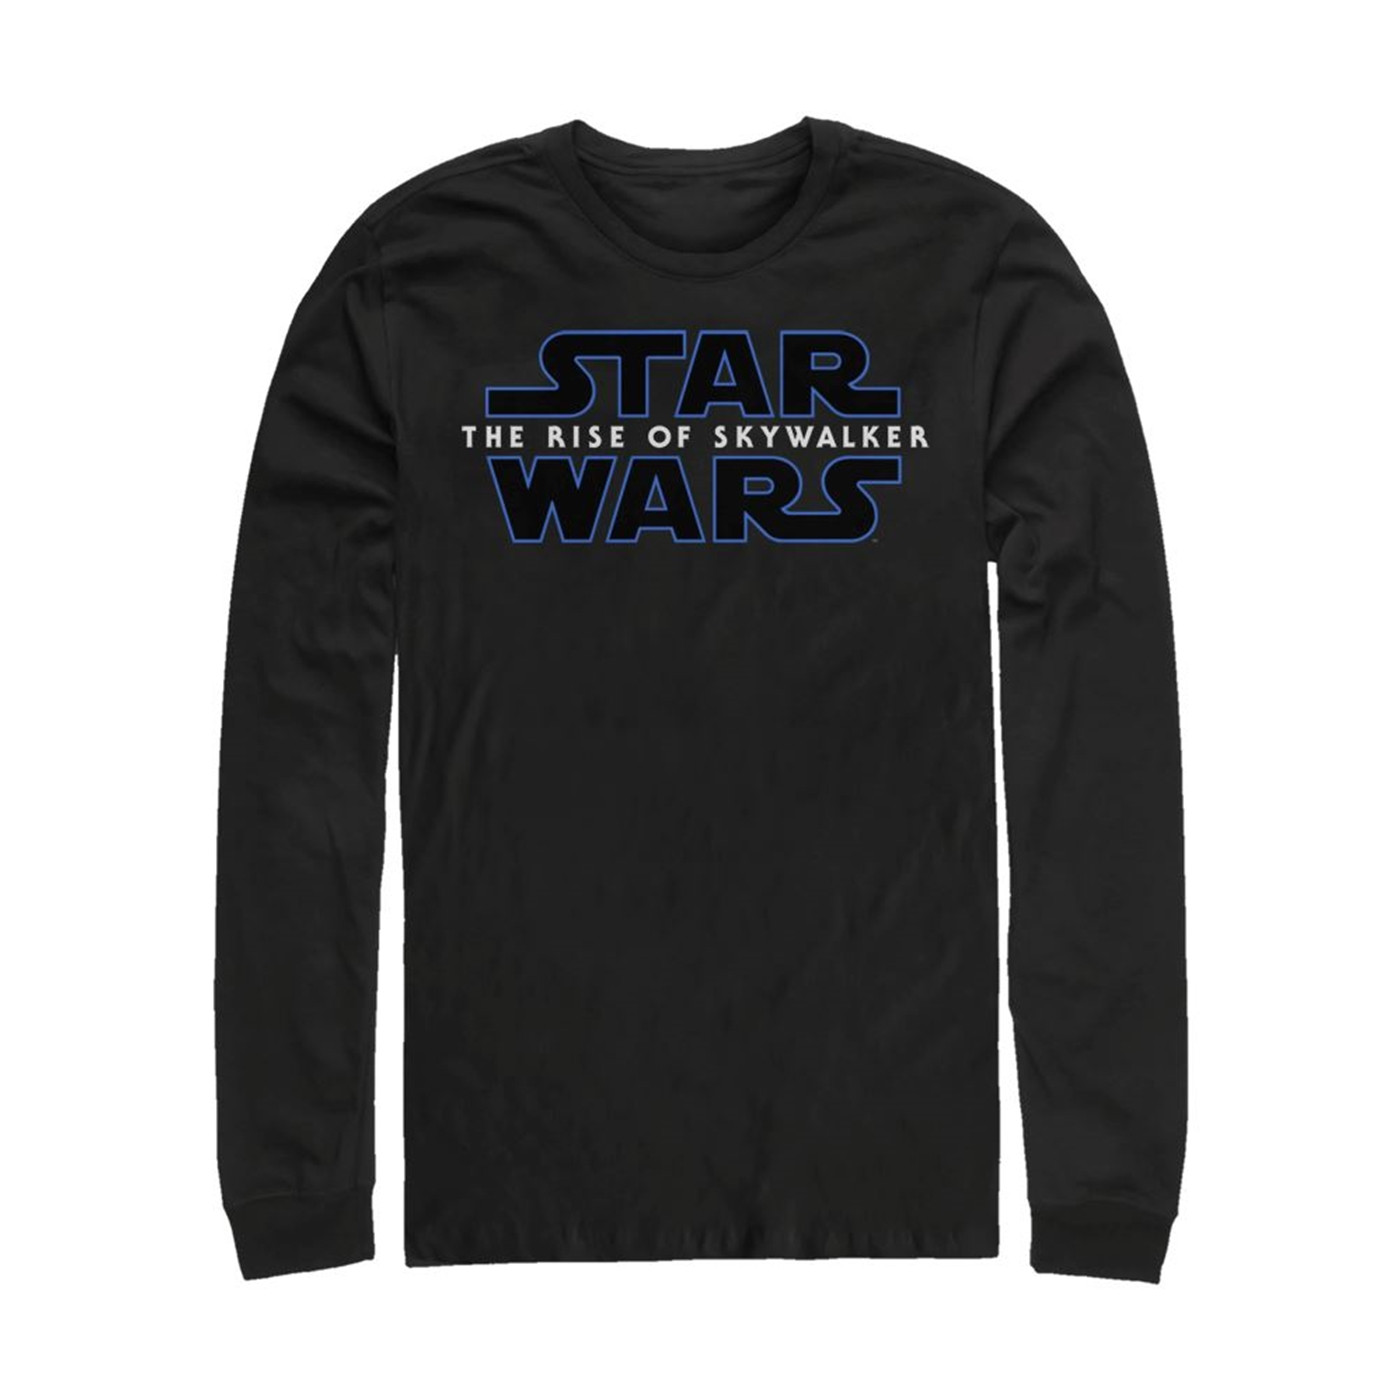 Star Wars the Rise of Skywalker Long Sleeve Shirt